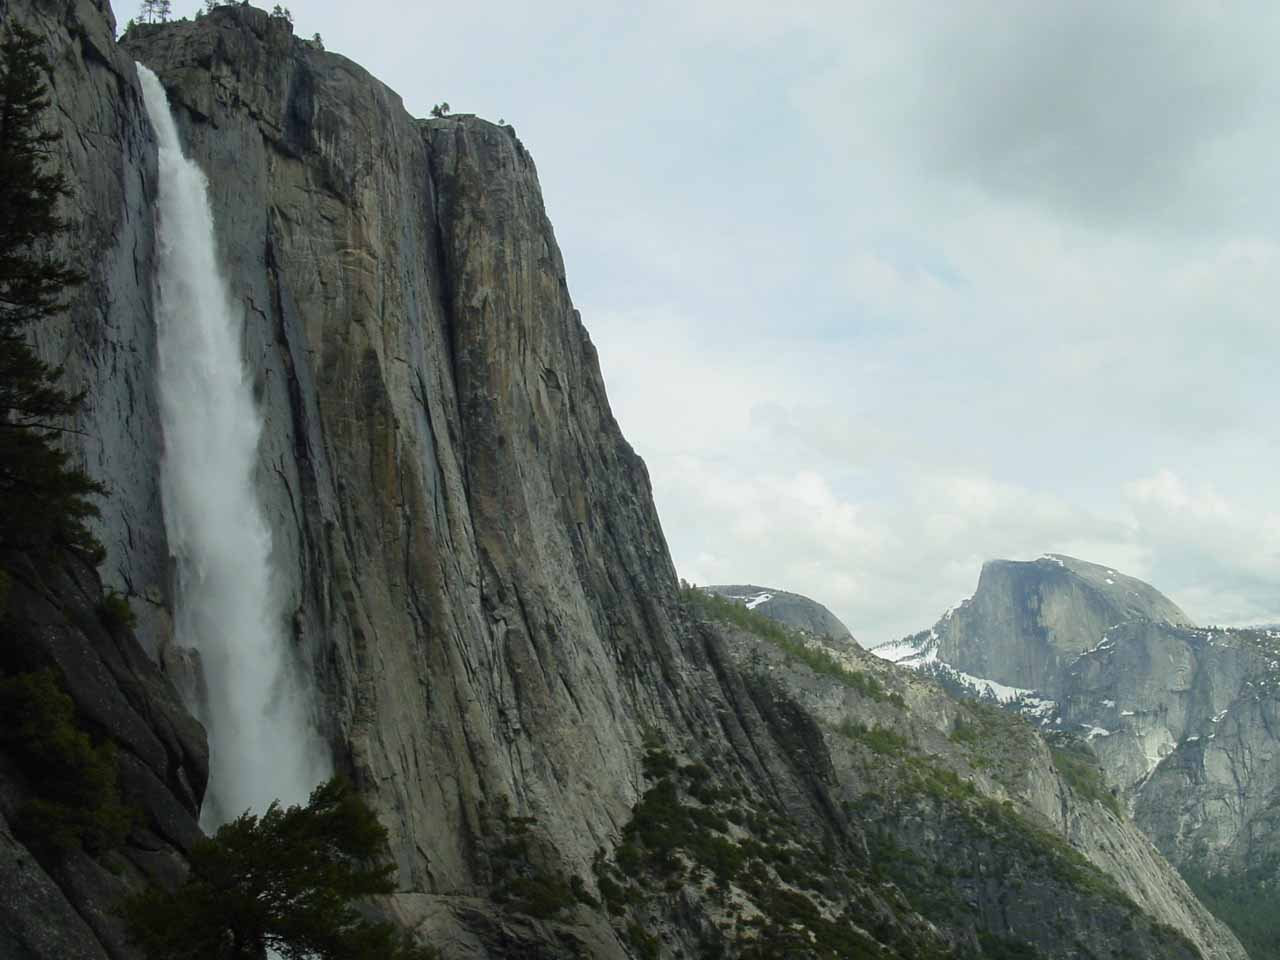 Upper Yosemite Falls and Half Dome